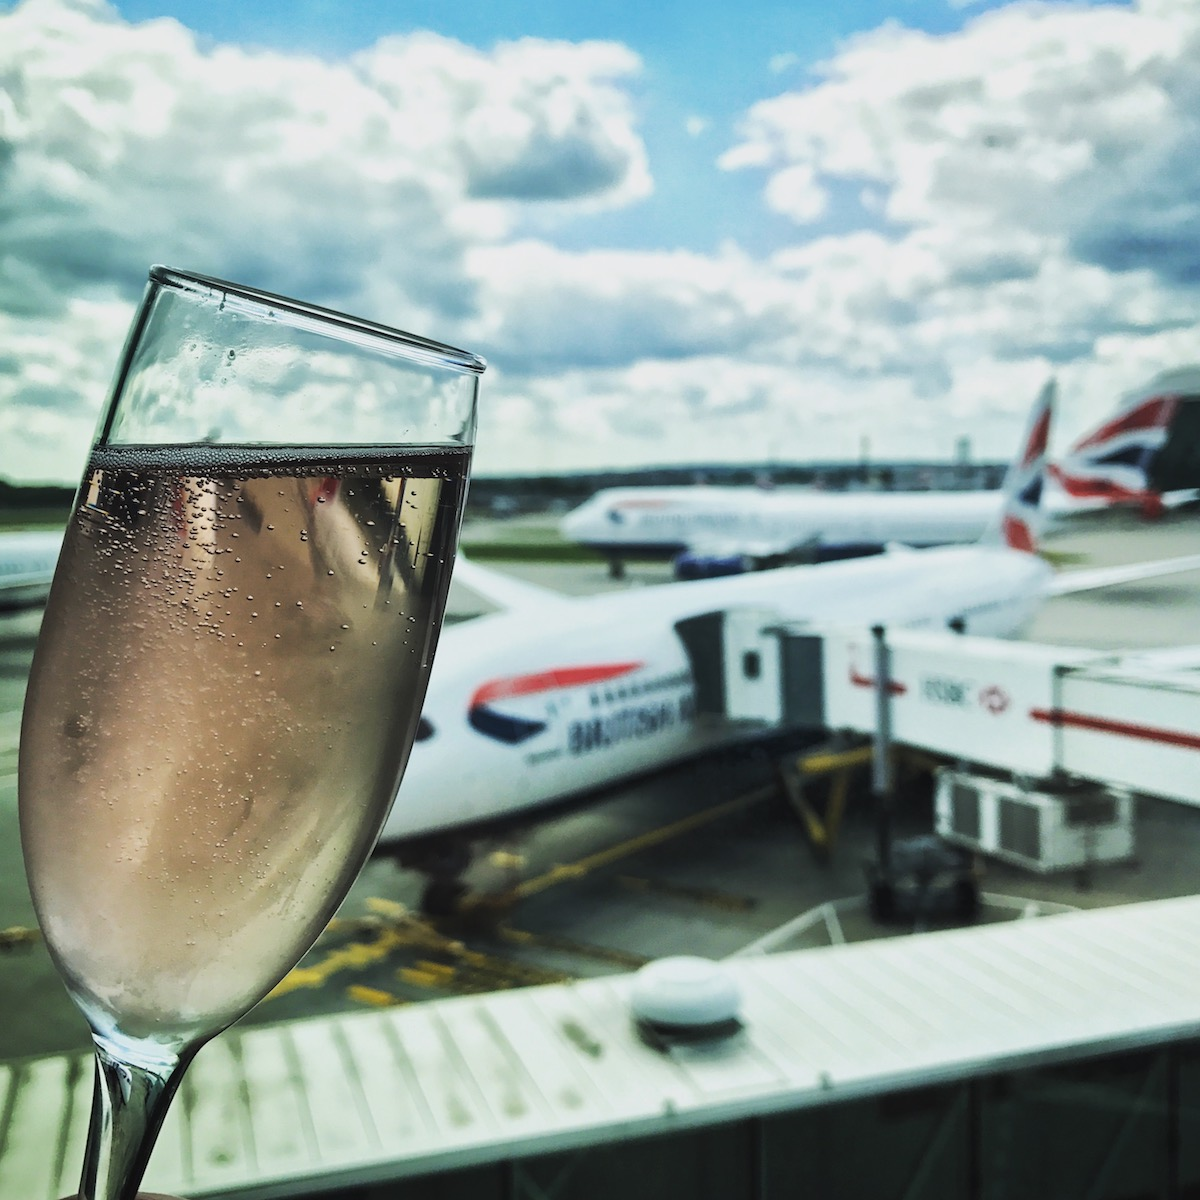 Big windows, beautiful planes, and a glass of wine make for a good way to pass the time.